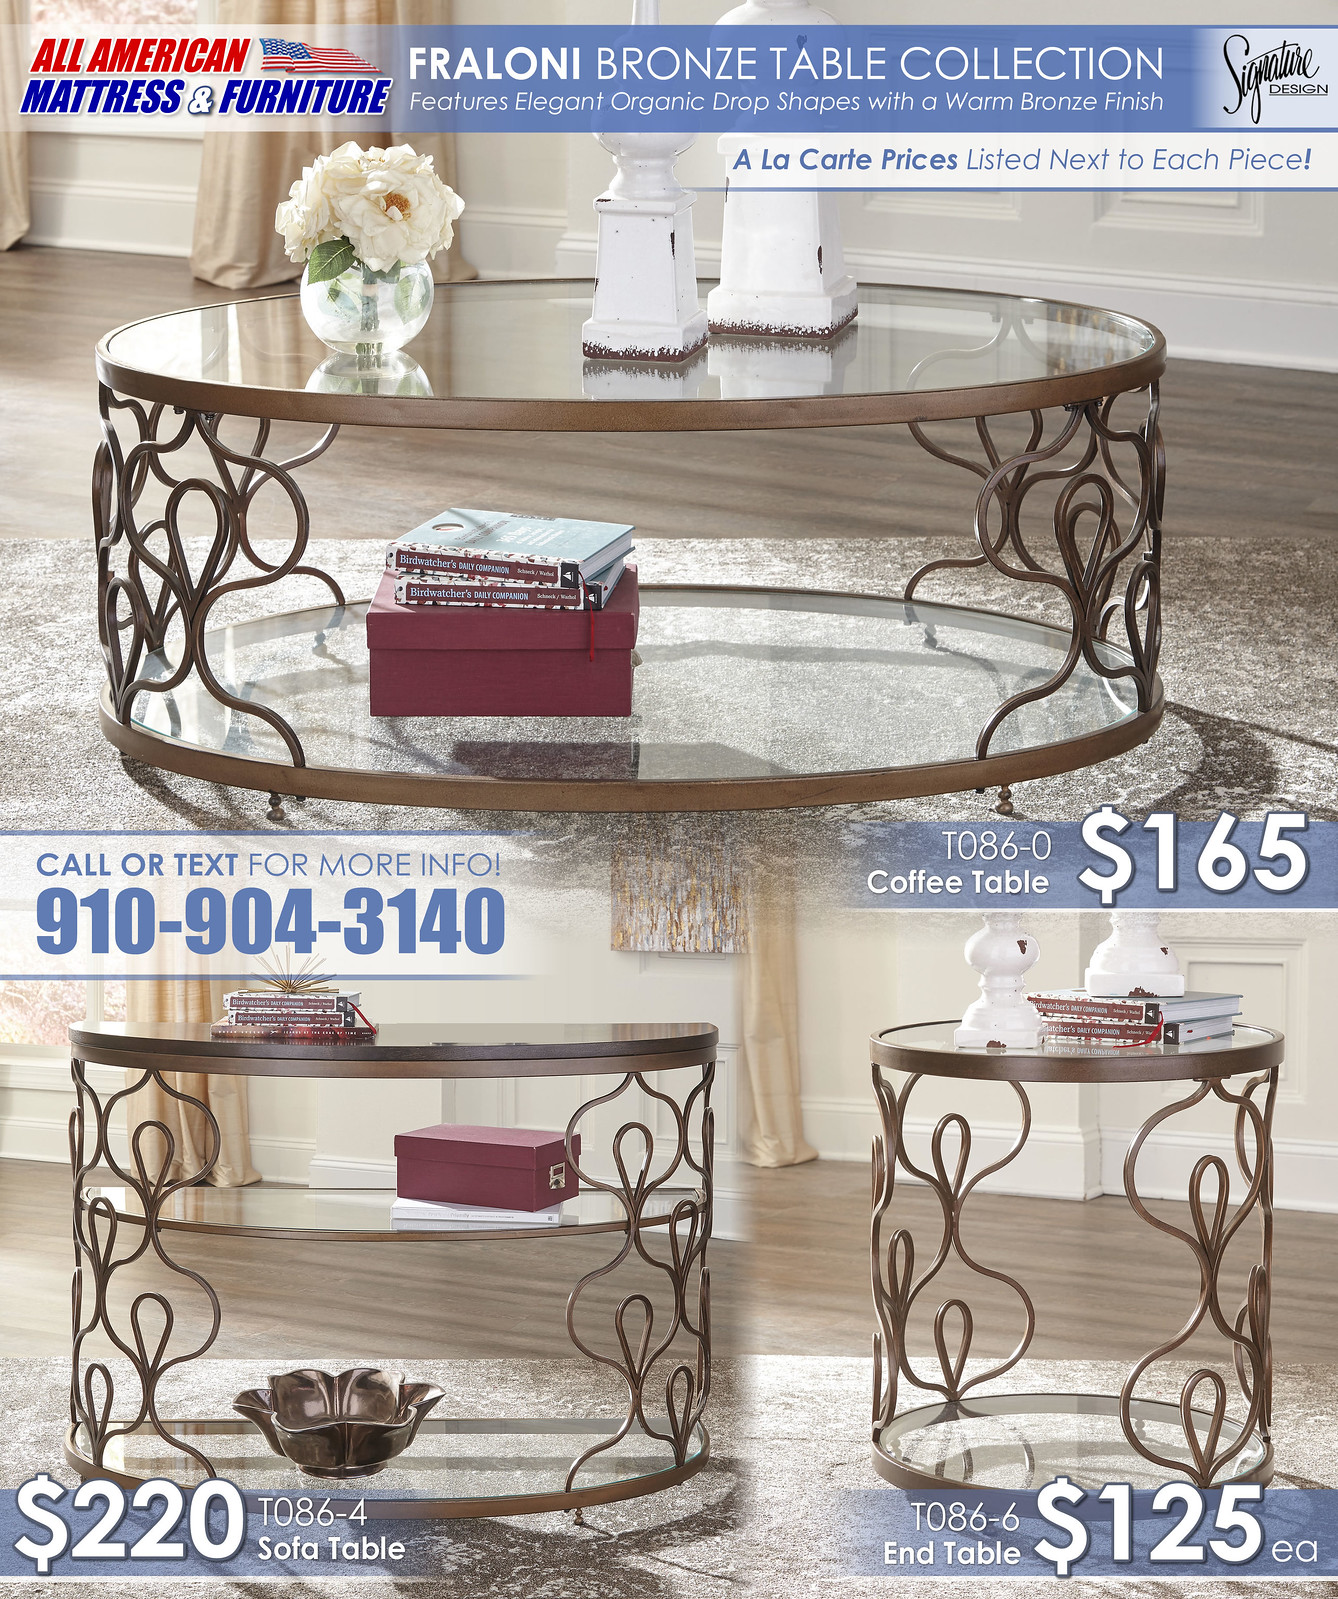 T086 Table Collection